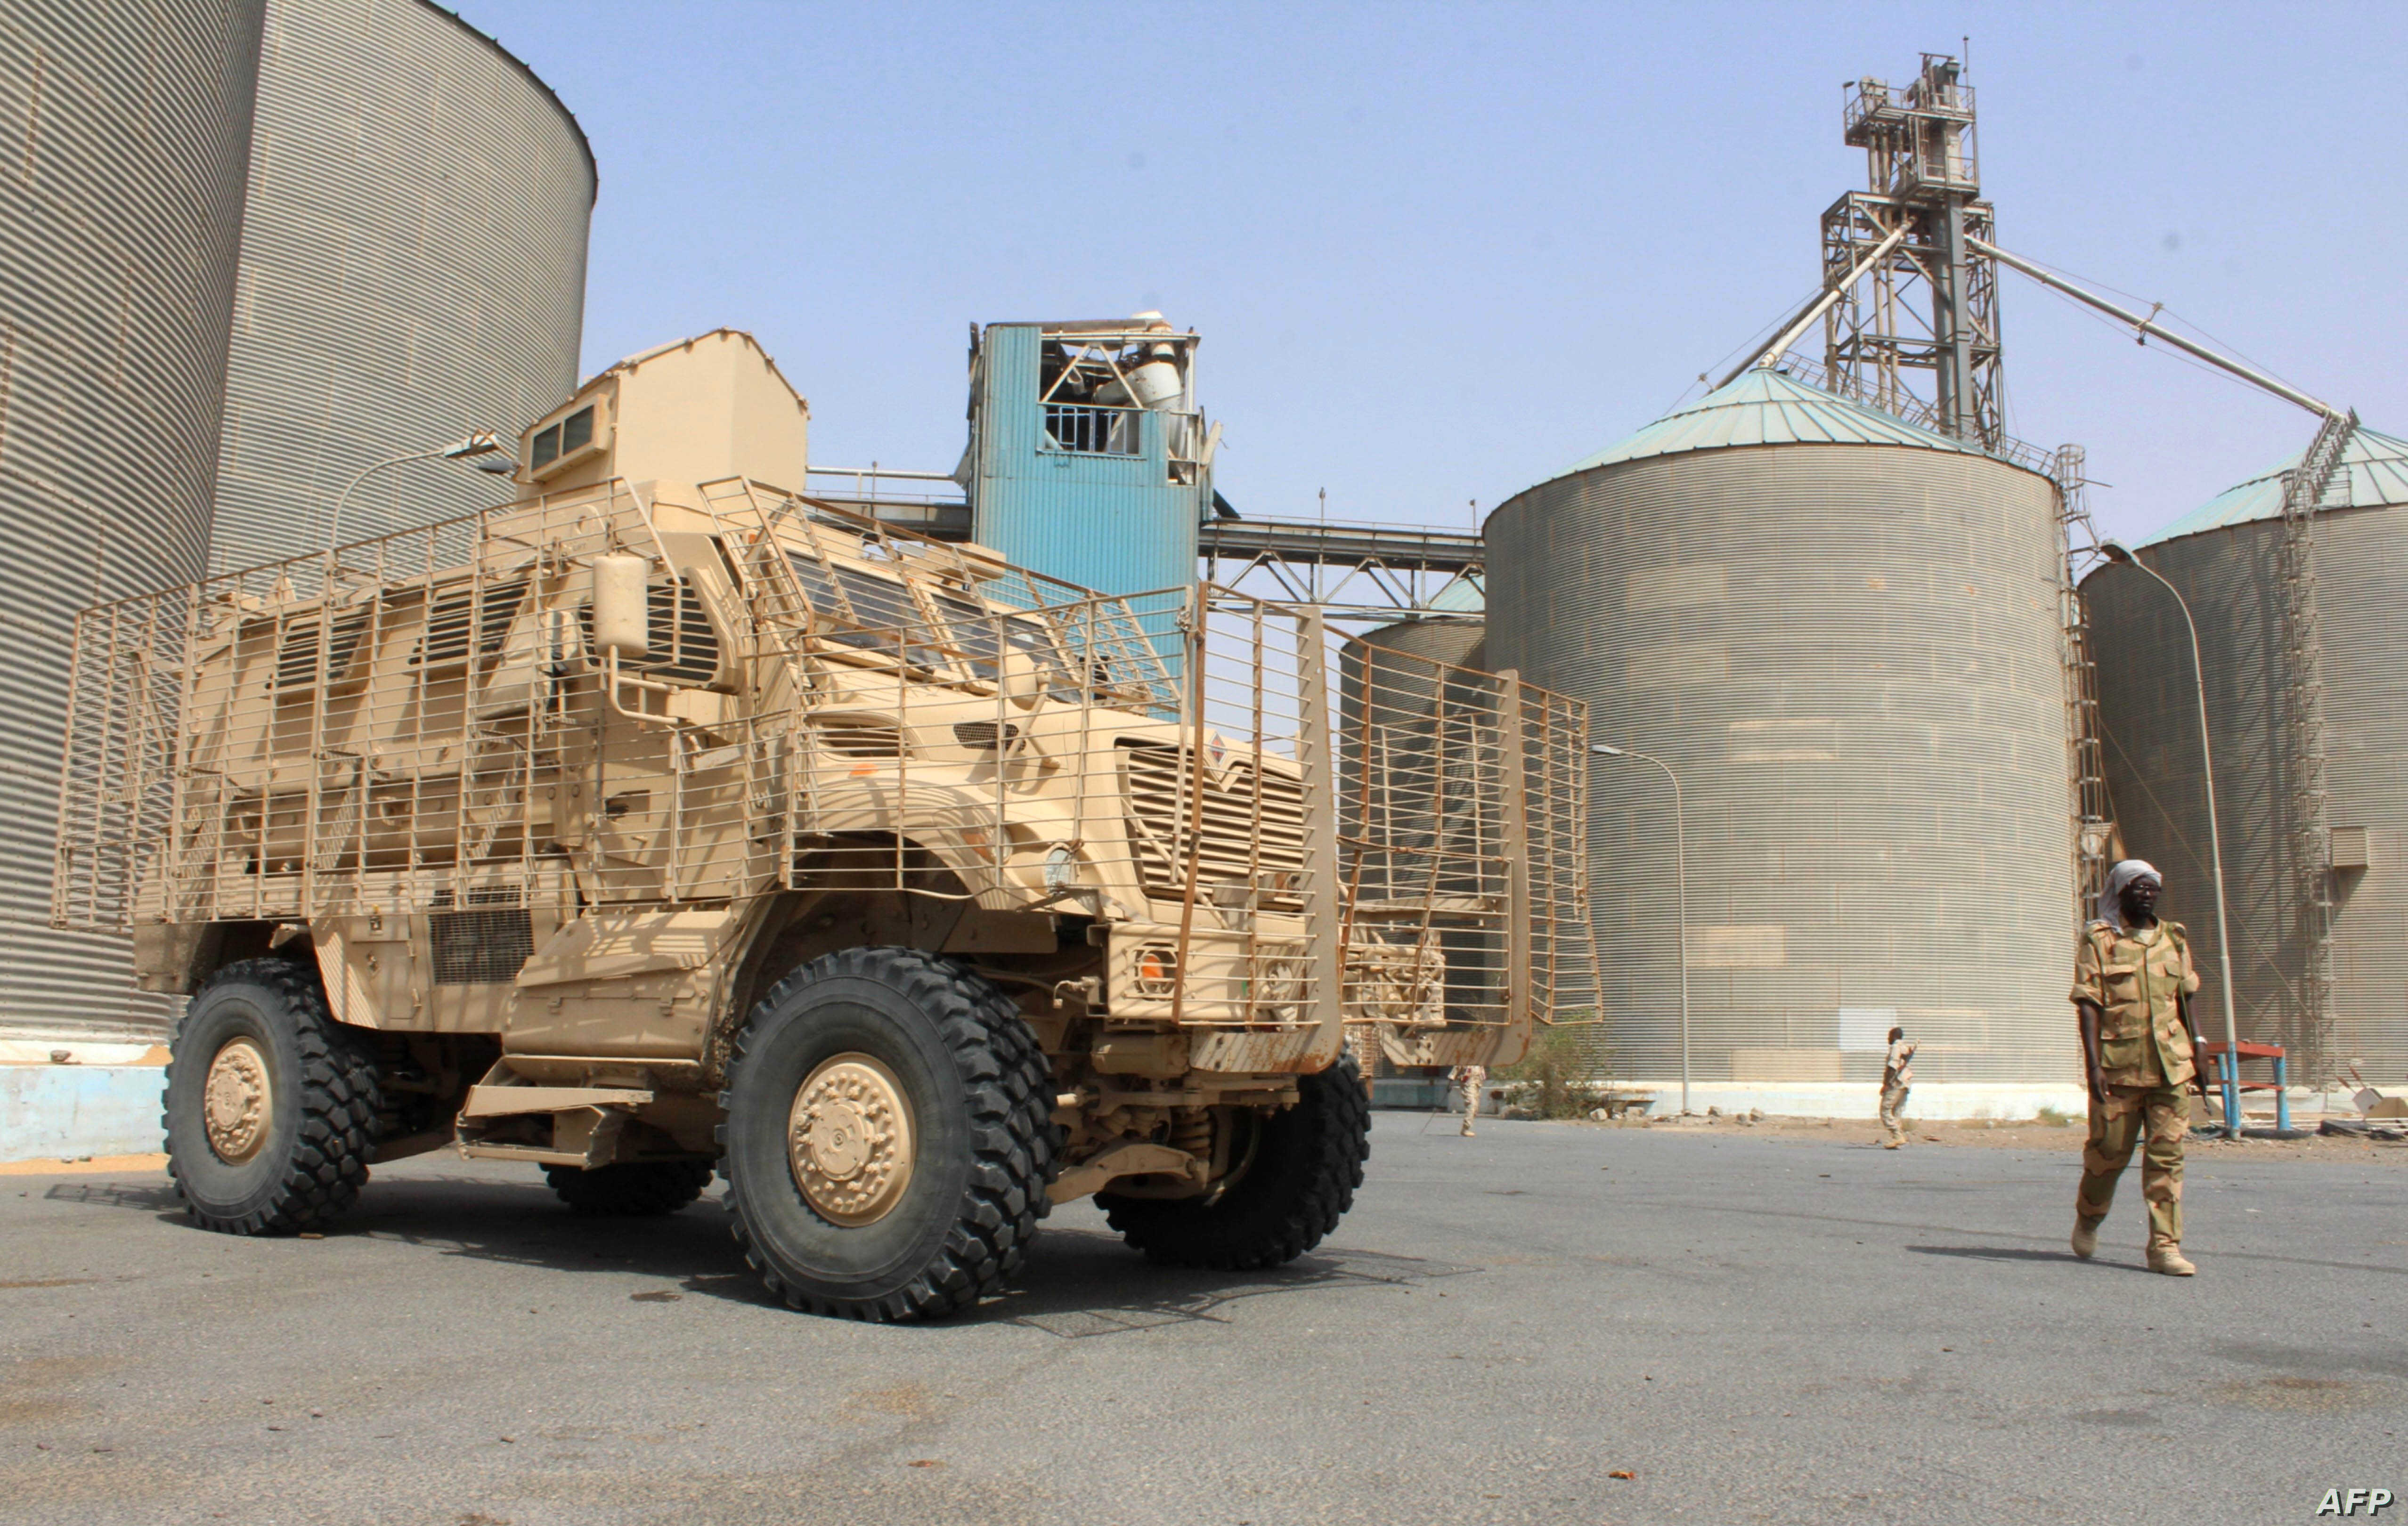 UN: Yemen's Houthi Rebels Must Allow Access to Grain Silos